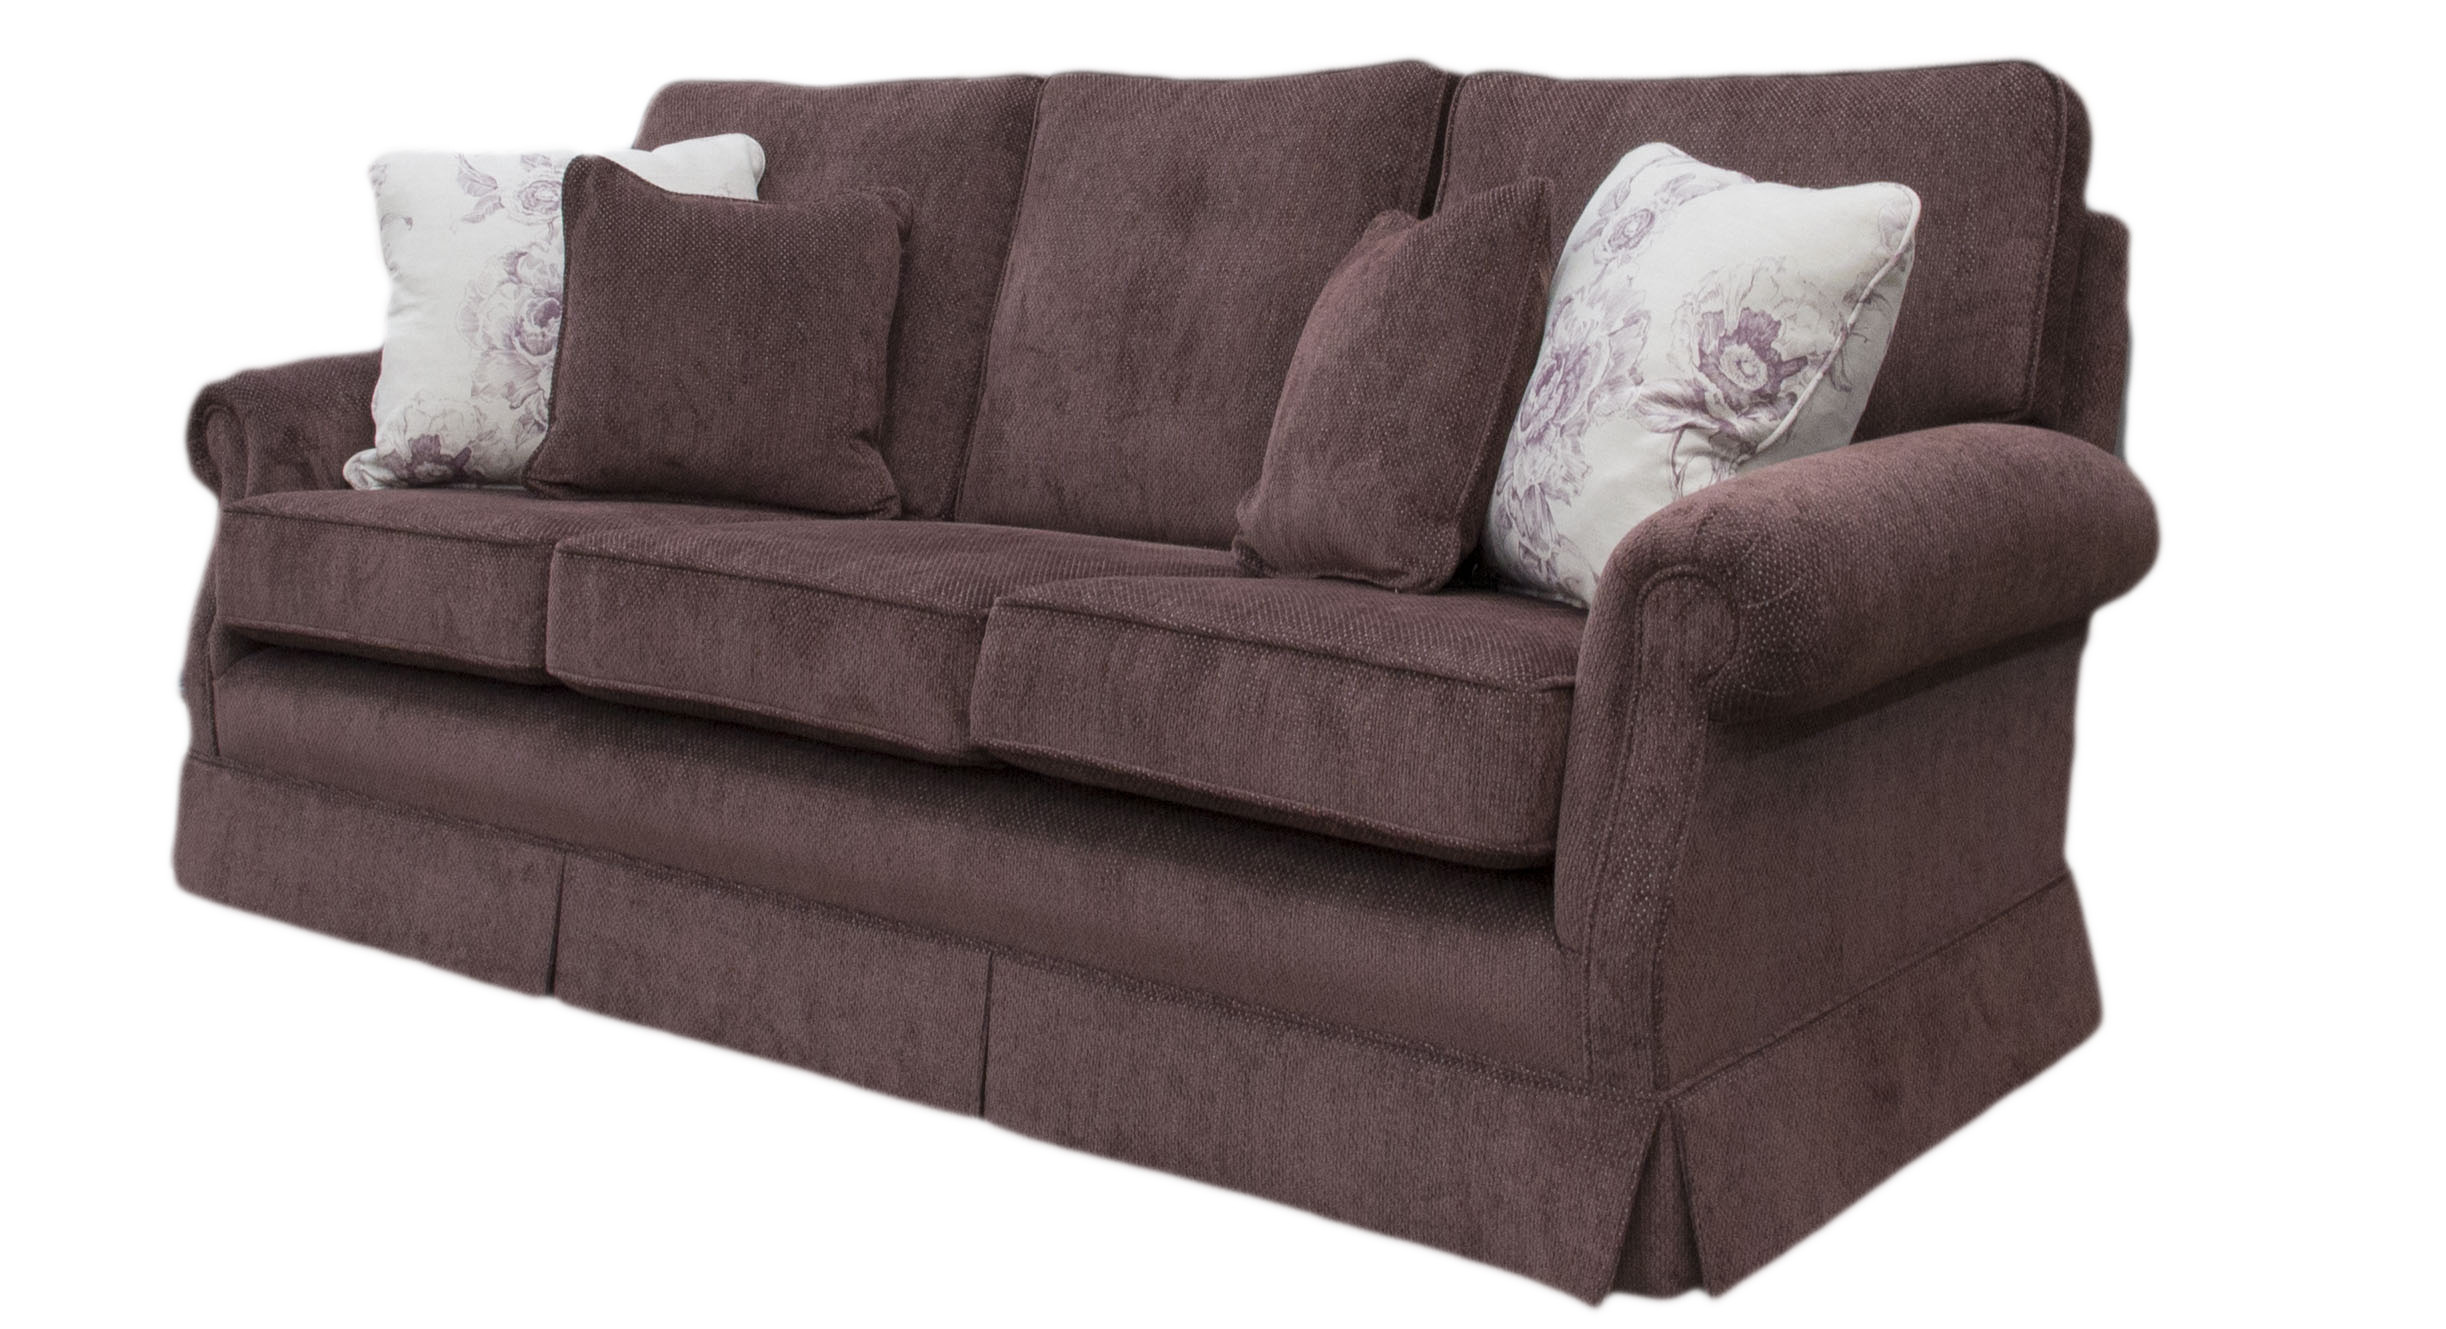 Clare Large Sofa - Silver Collection